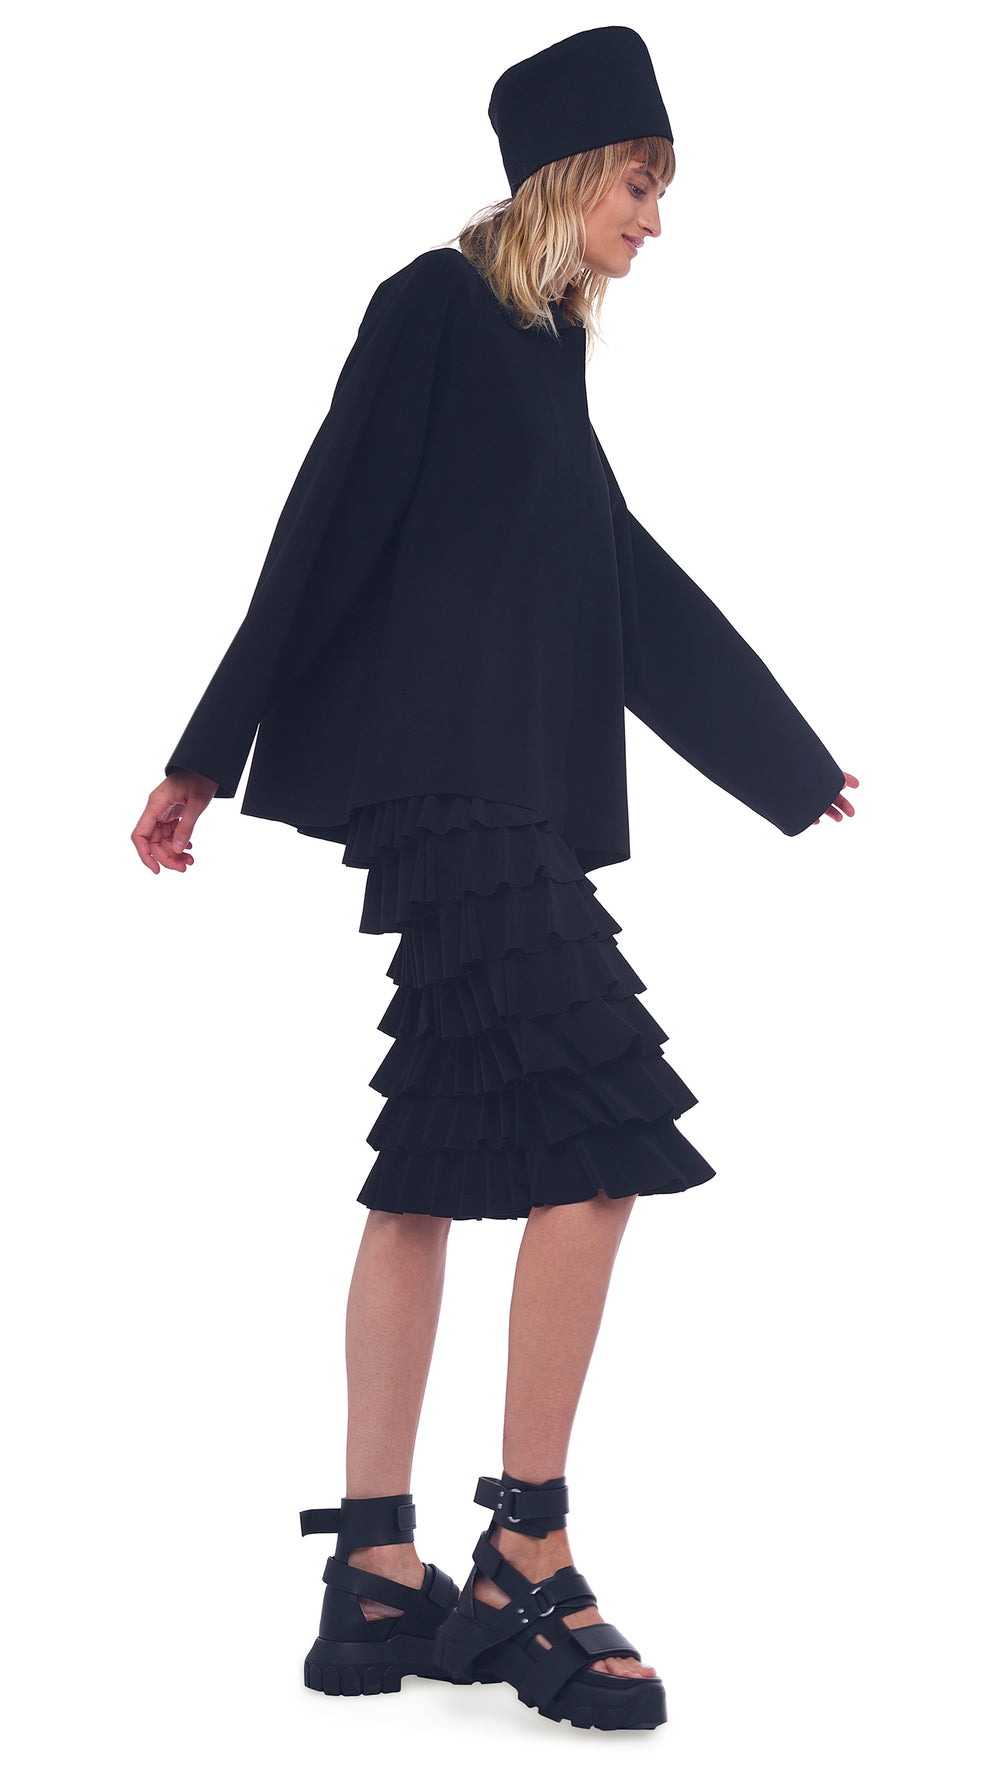 RUFFLE SKIRT TO THE KNEE